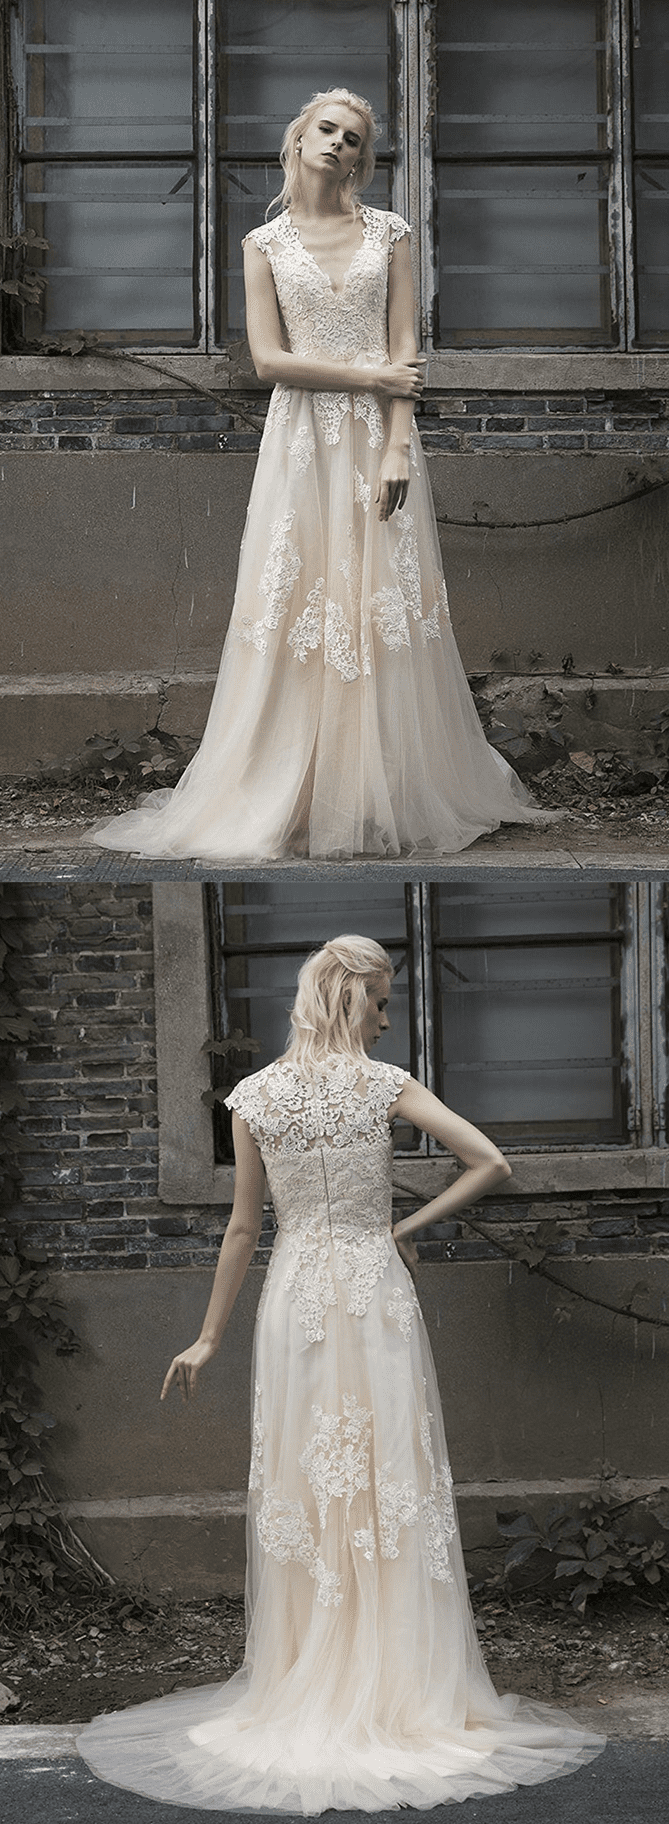 Cap sleeve lace wedding dress   Chic Wedding Gowns You Can Order on Amazon  AMAZON WEDDING